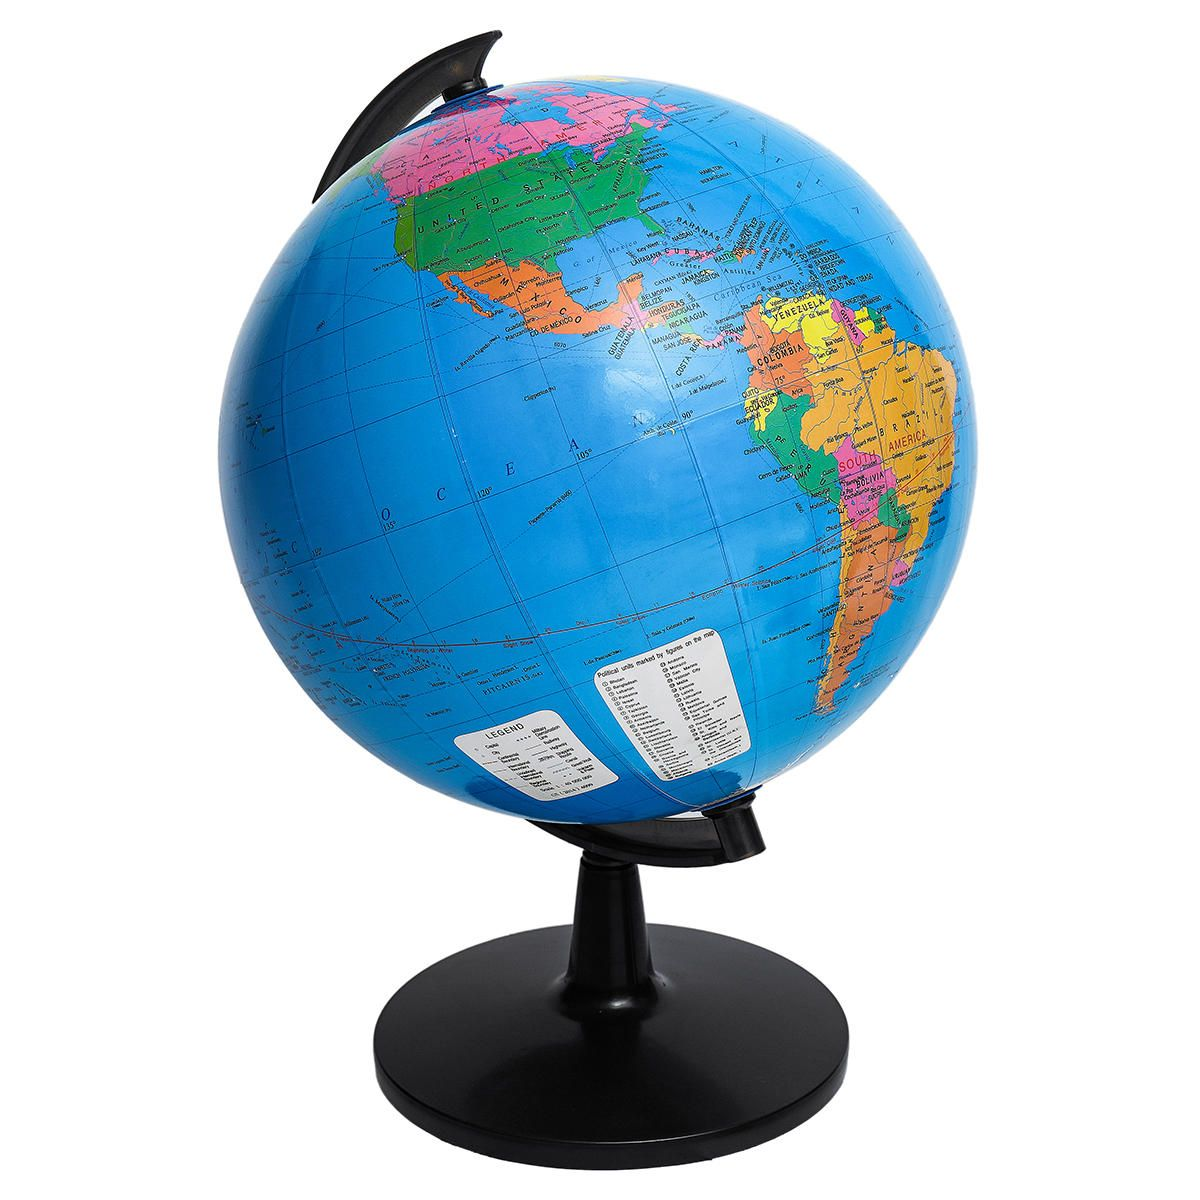 MYM US$44.42 KingSo World Globe 12.6'' Globe of Perfect Spinning Globe for Kids Geography Students Teachers, Easy Rotating Swivel